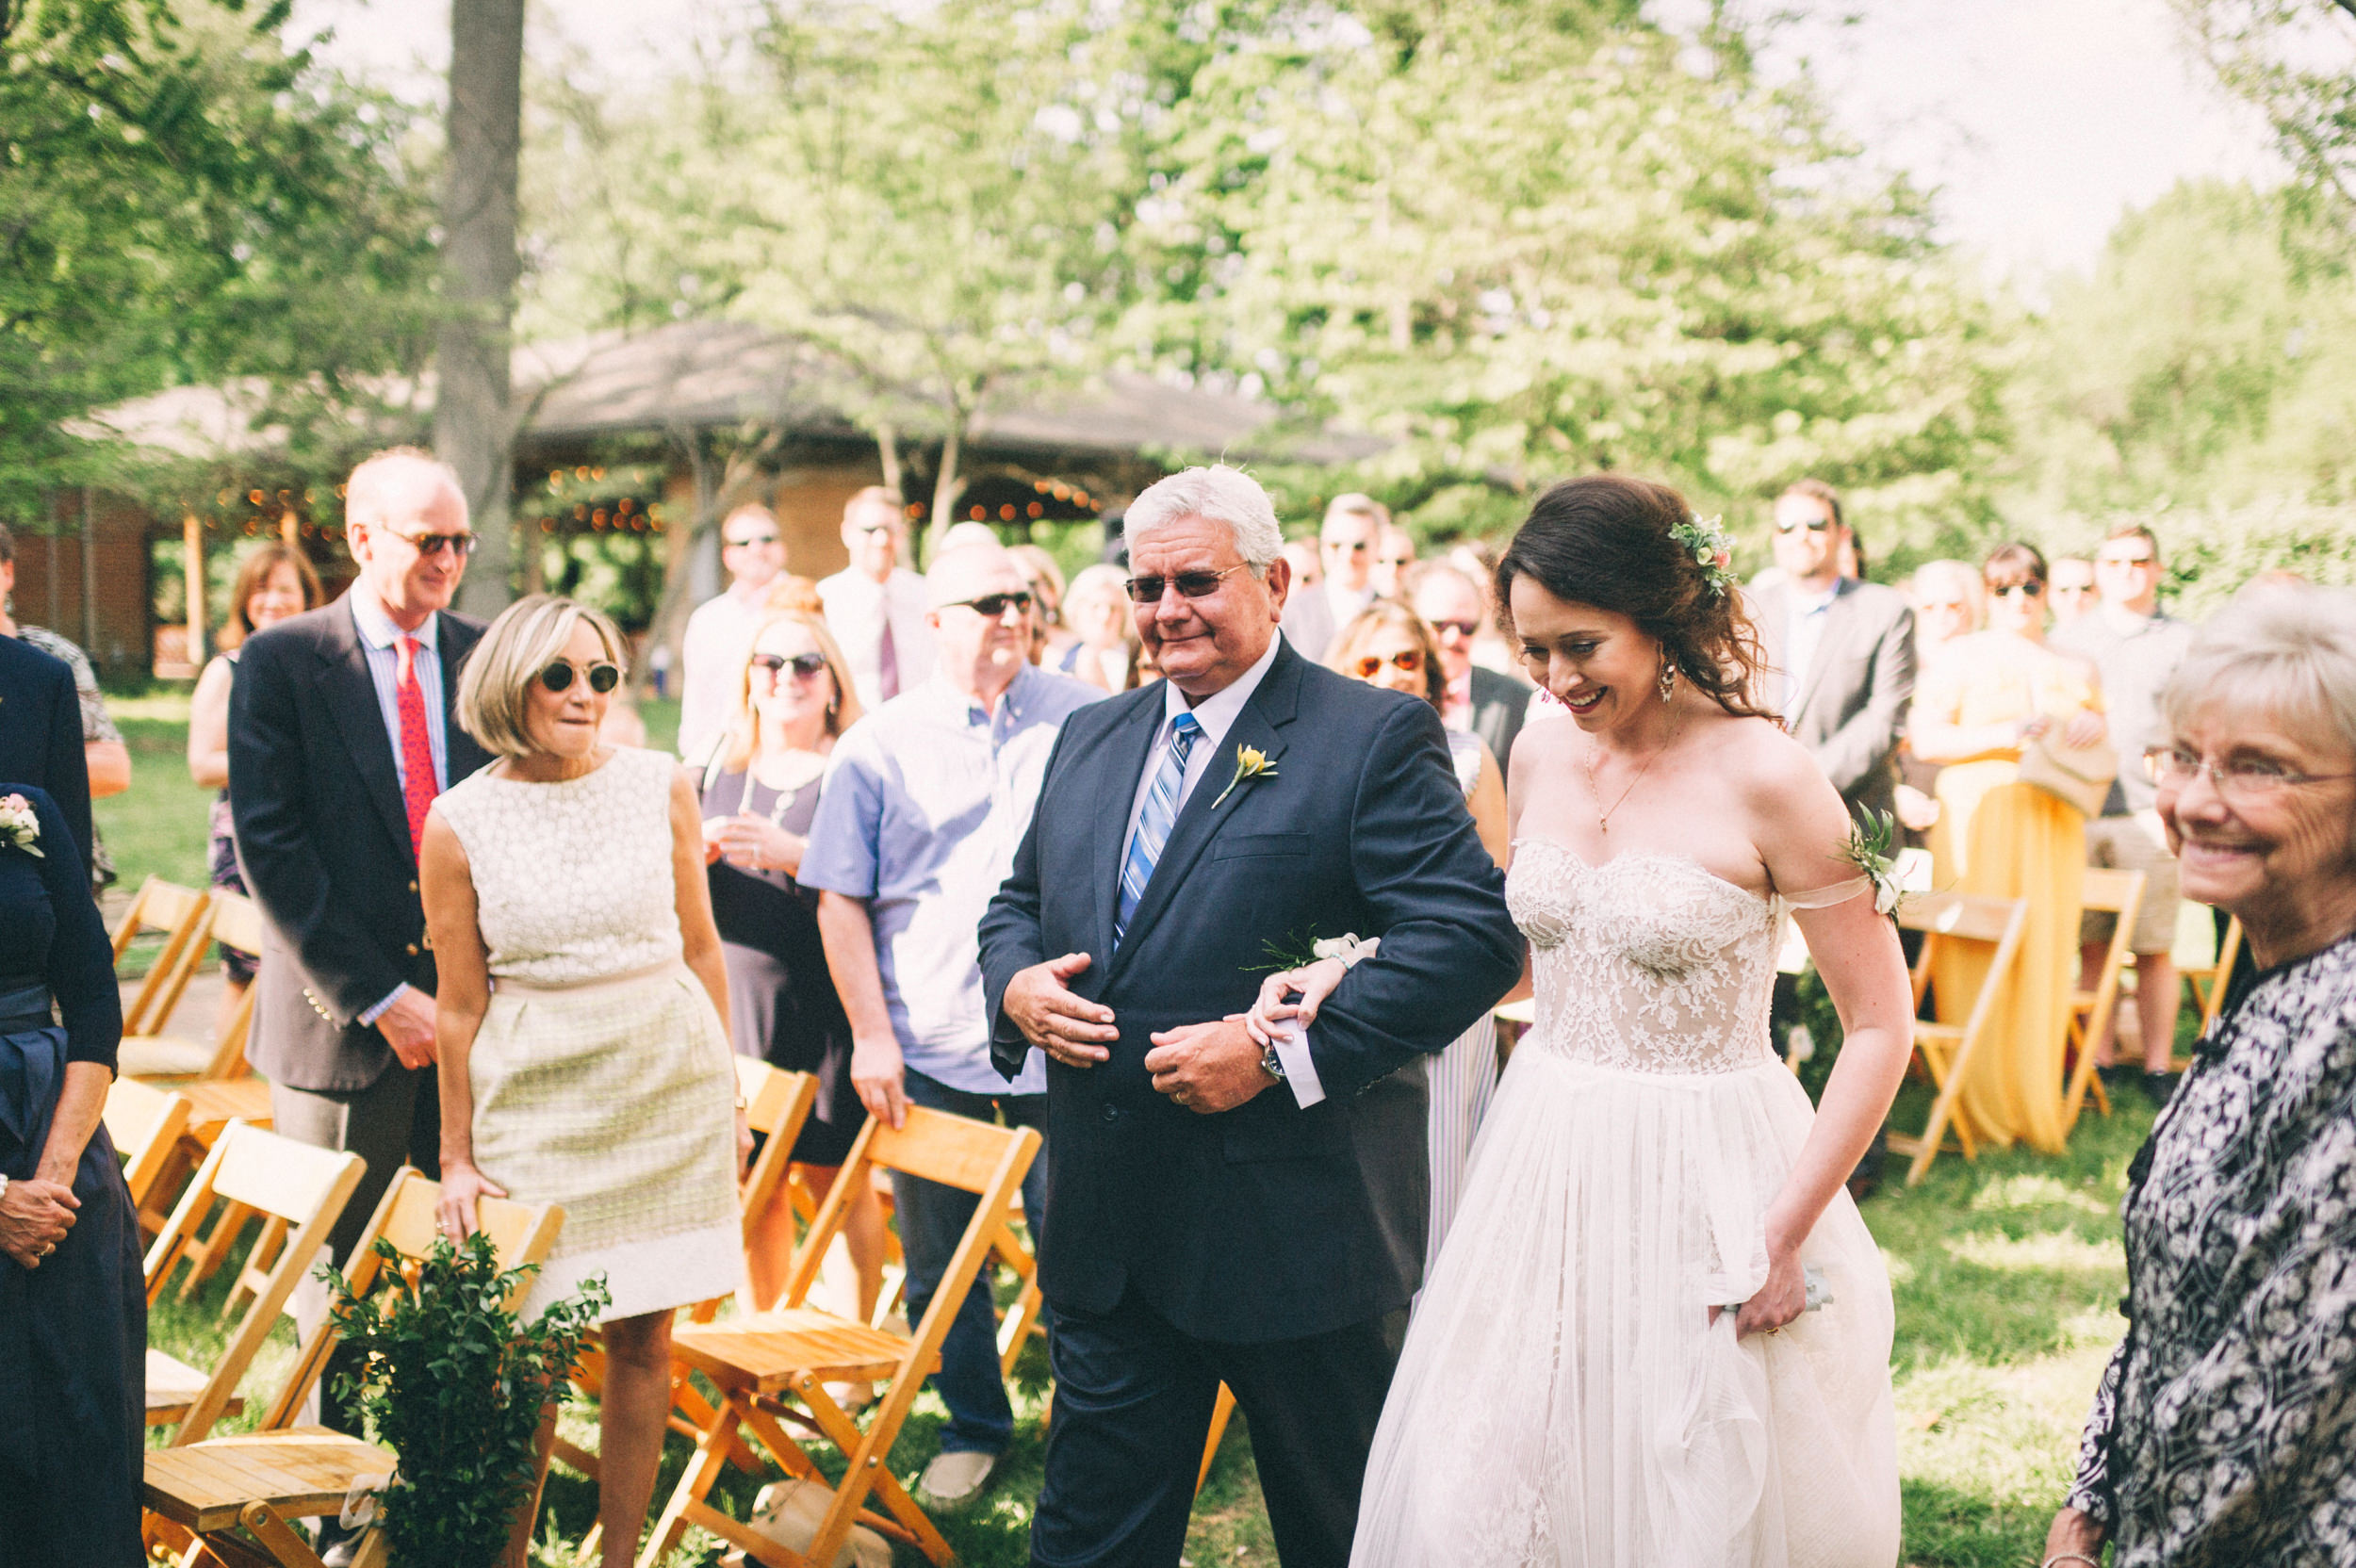 cassie-drew-wedding-farmington-sarah-katherine-davis-photography-287edit.jpg